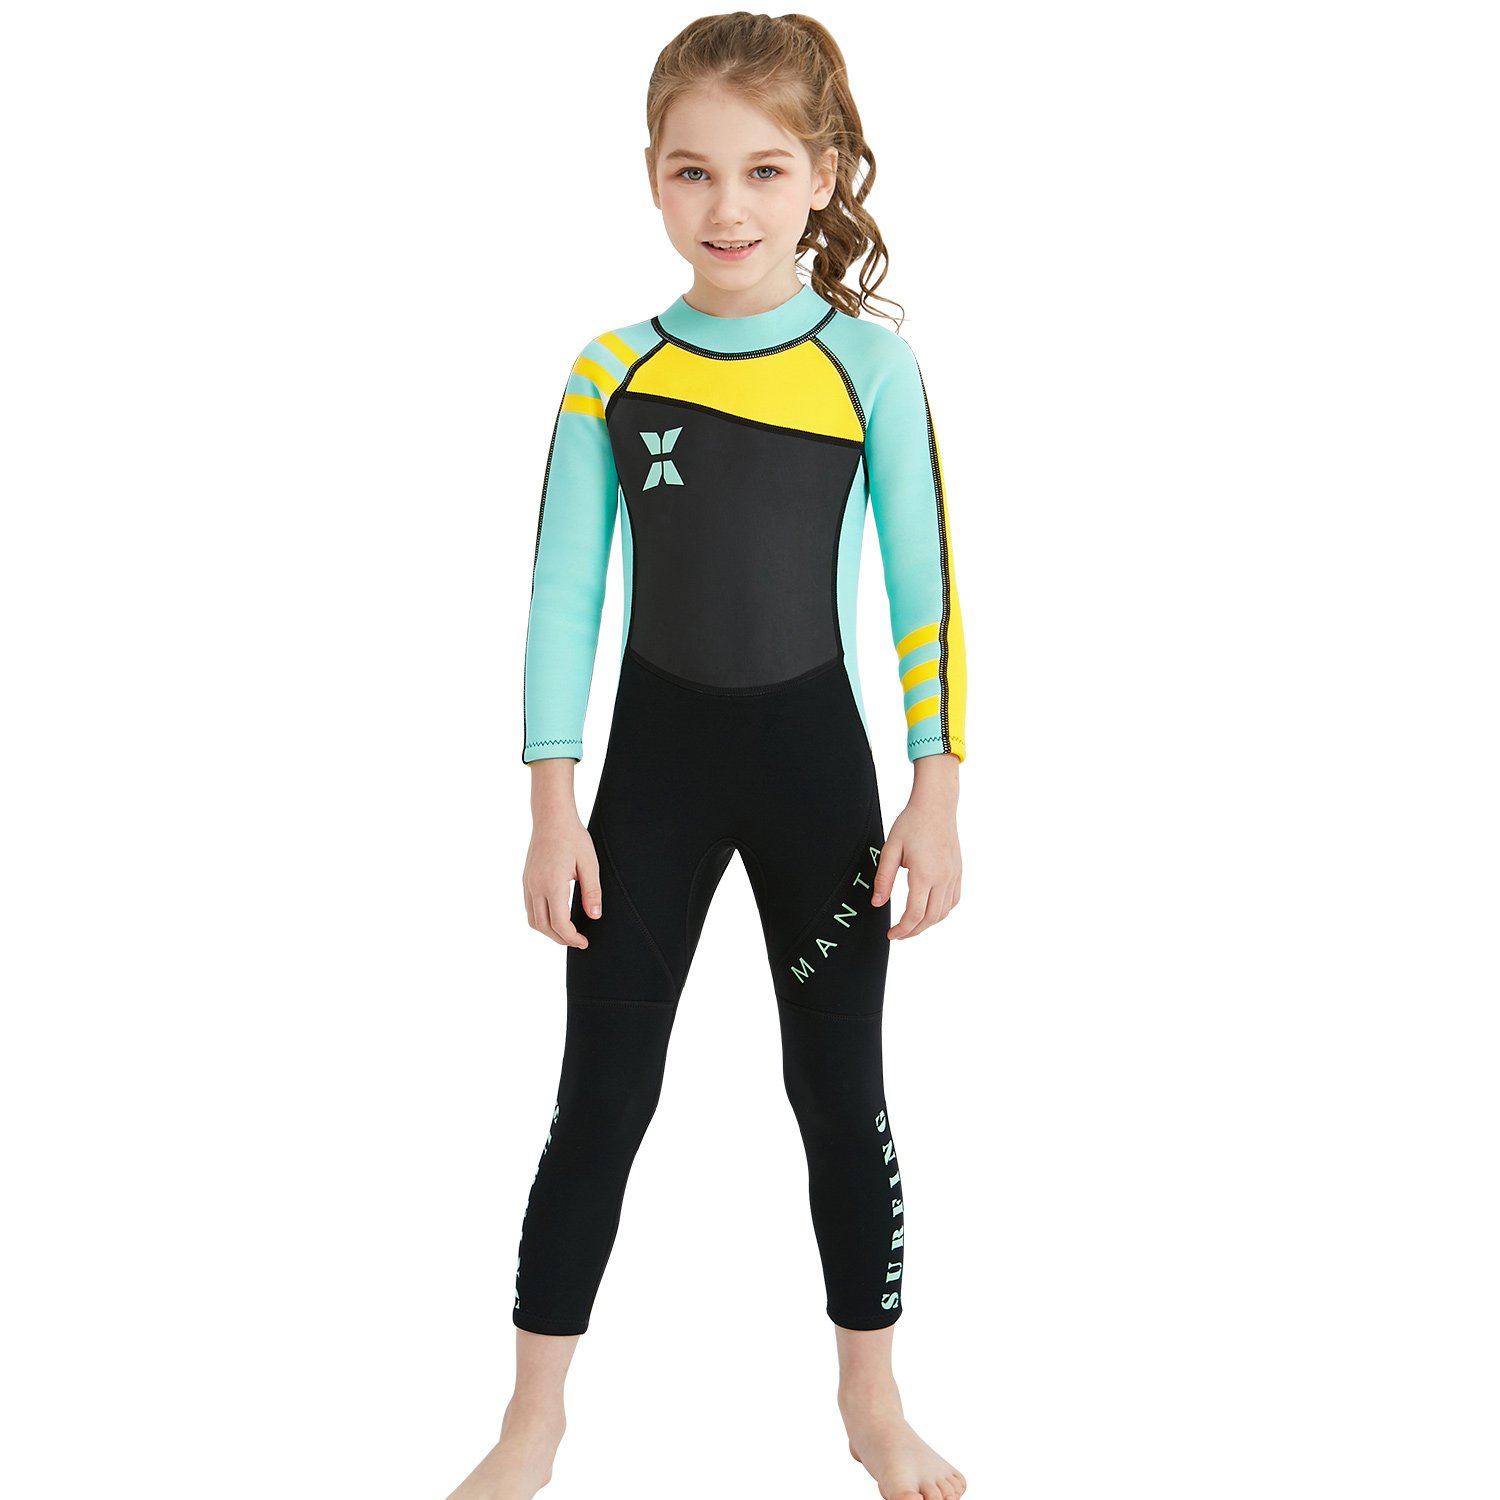 Dark Lightning Kids Wetsuit Full Thermal Suit, Grils Neoprene One Piece Fishing Suits, 2mm Long Sleeve Swimsuit for Children Scuba Diving, Surfing, Paddling, Swimming, Blue, S Size